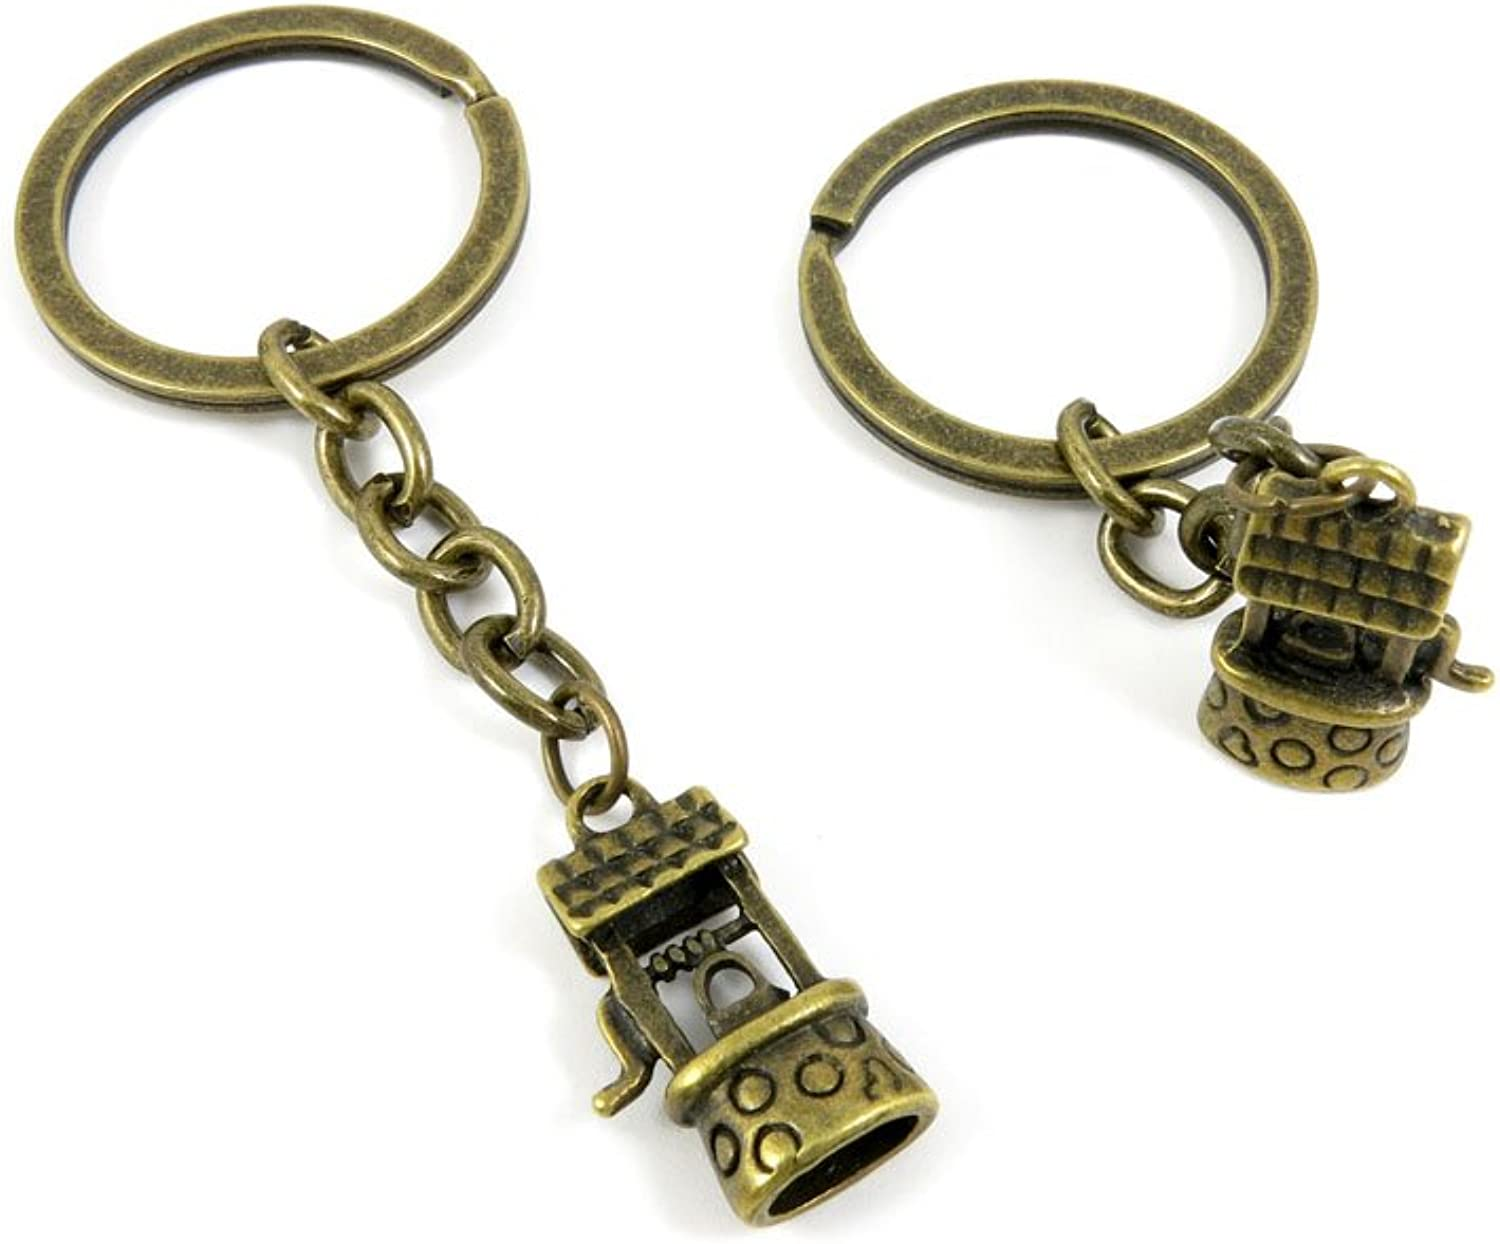 50 Pieces Fashion Jewelry Keyring Keychain Door Car Key Tag Ring Chain Supplier Supply Wholesale Bulk Lots C0NG7 Hanging Well